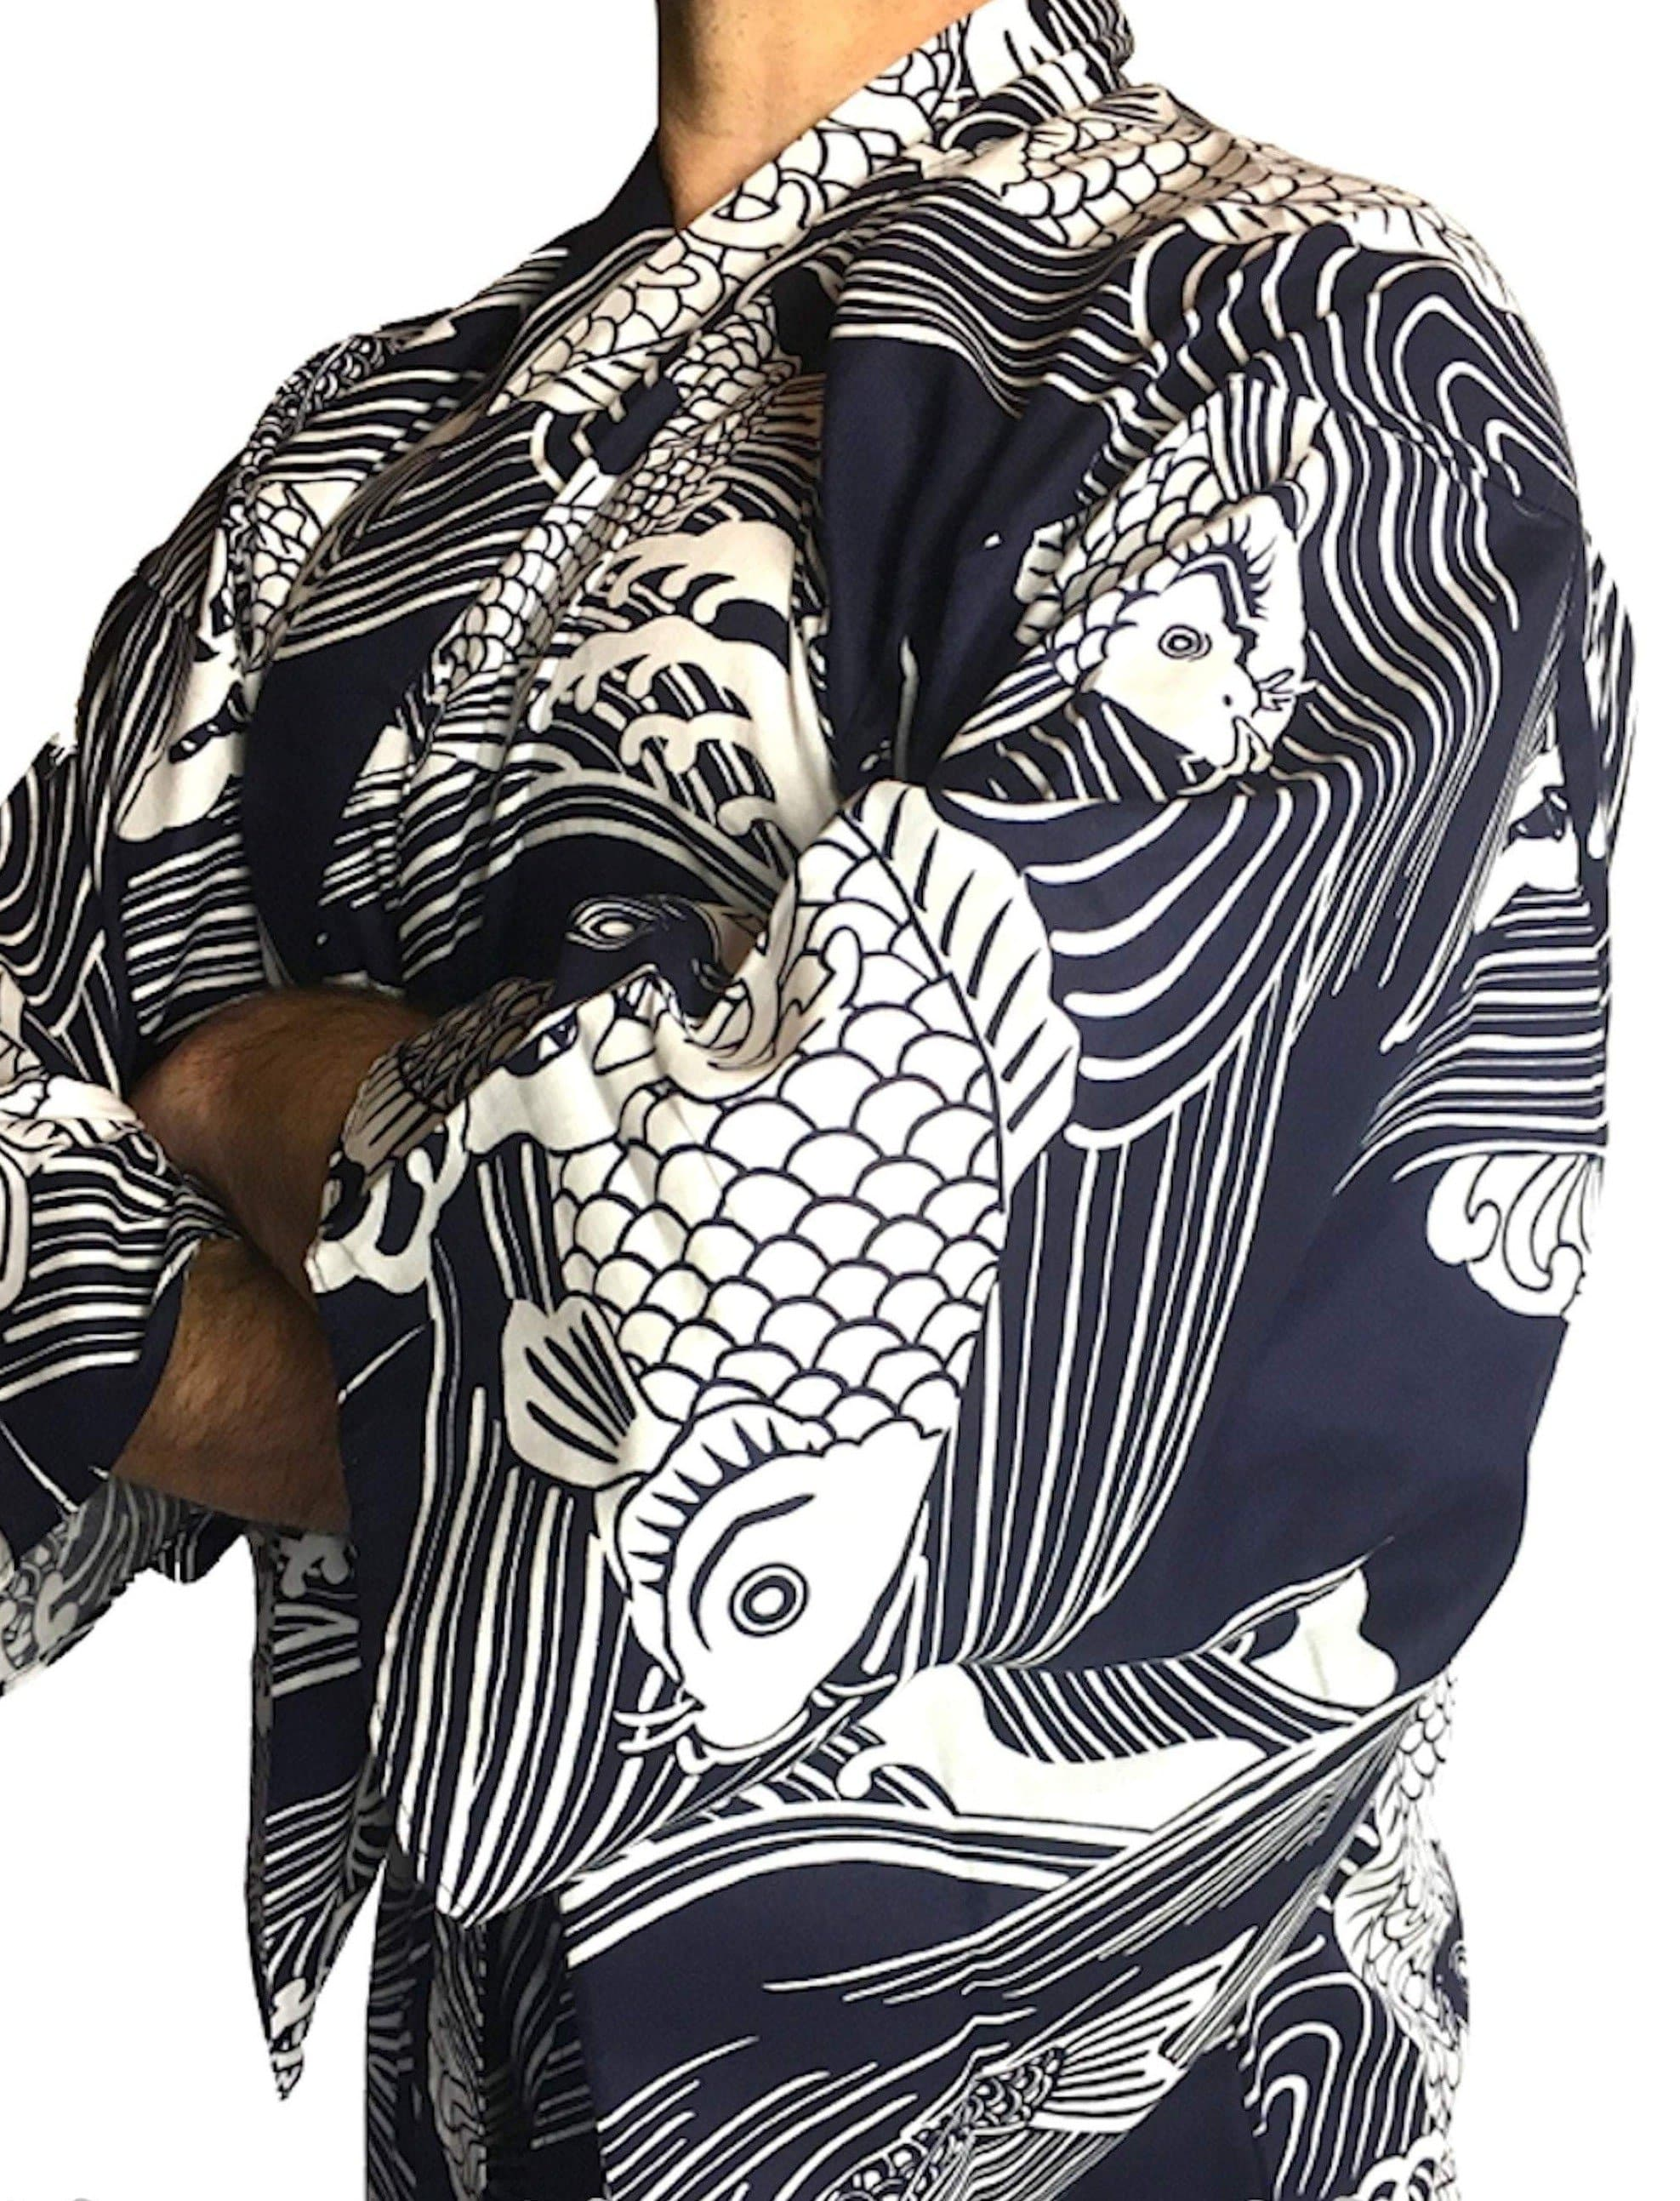 Feudal Japan Koi Men's Yukata - Traditional Japanese Kimono Bathrobe